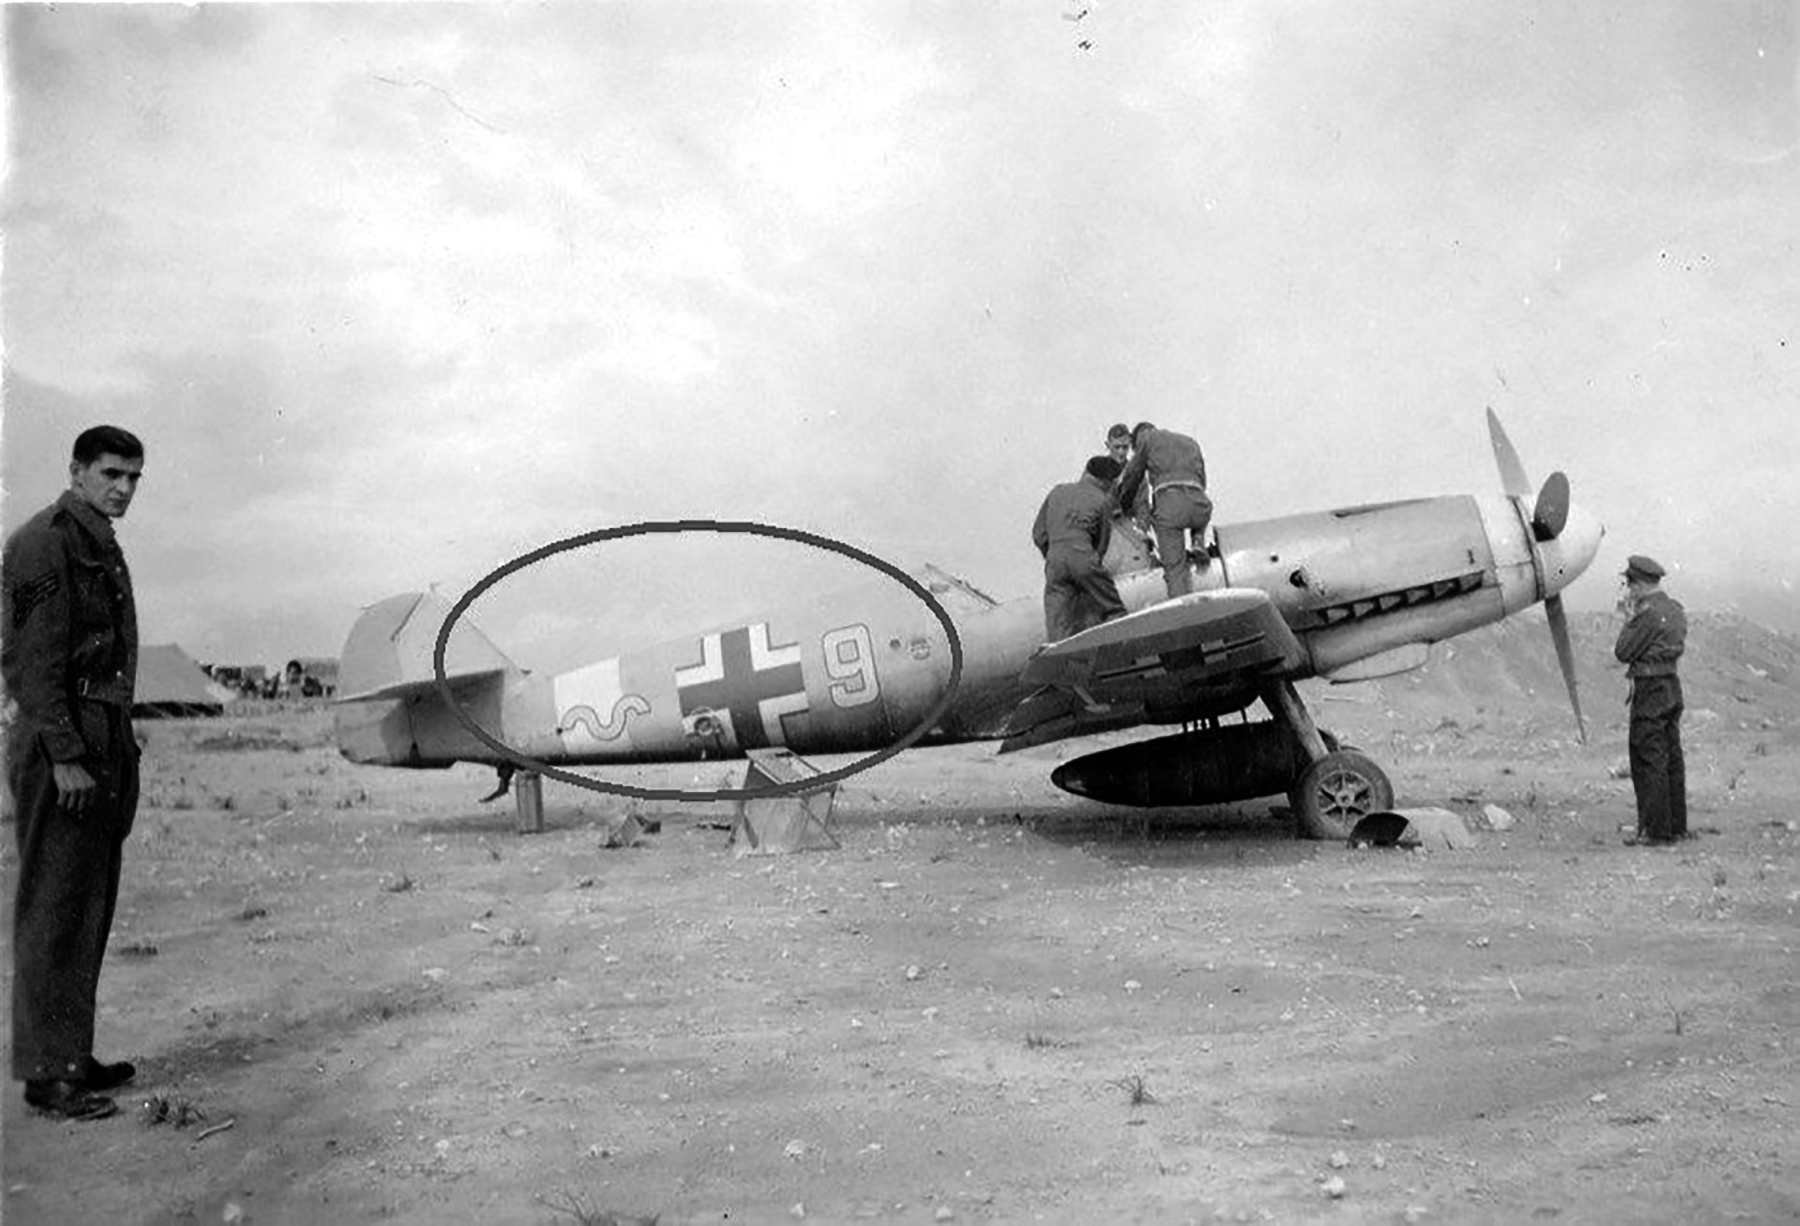 Messerschmitt Bf 109F4Trop 9.JG27 Yellow 9 WNr 8550 abandoned at Bir el Abd 13th Nov 1942 ebay2